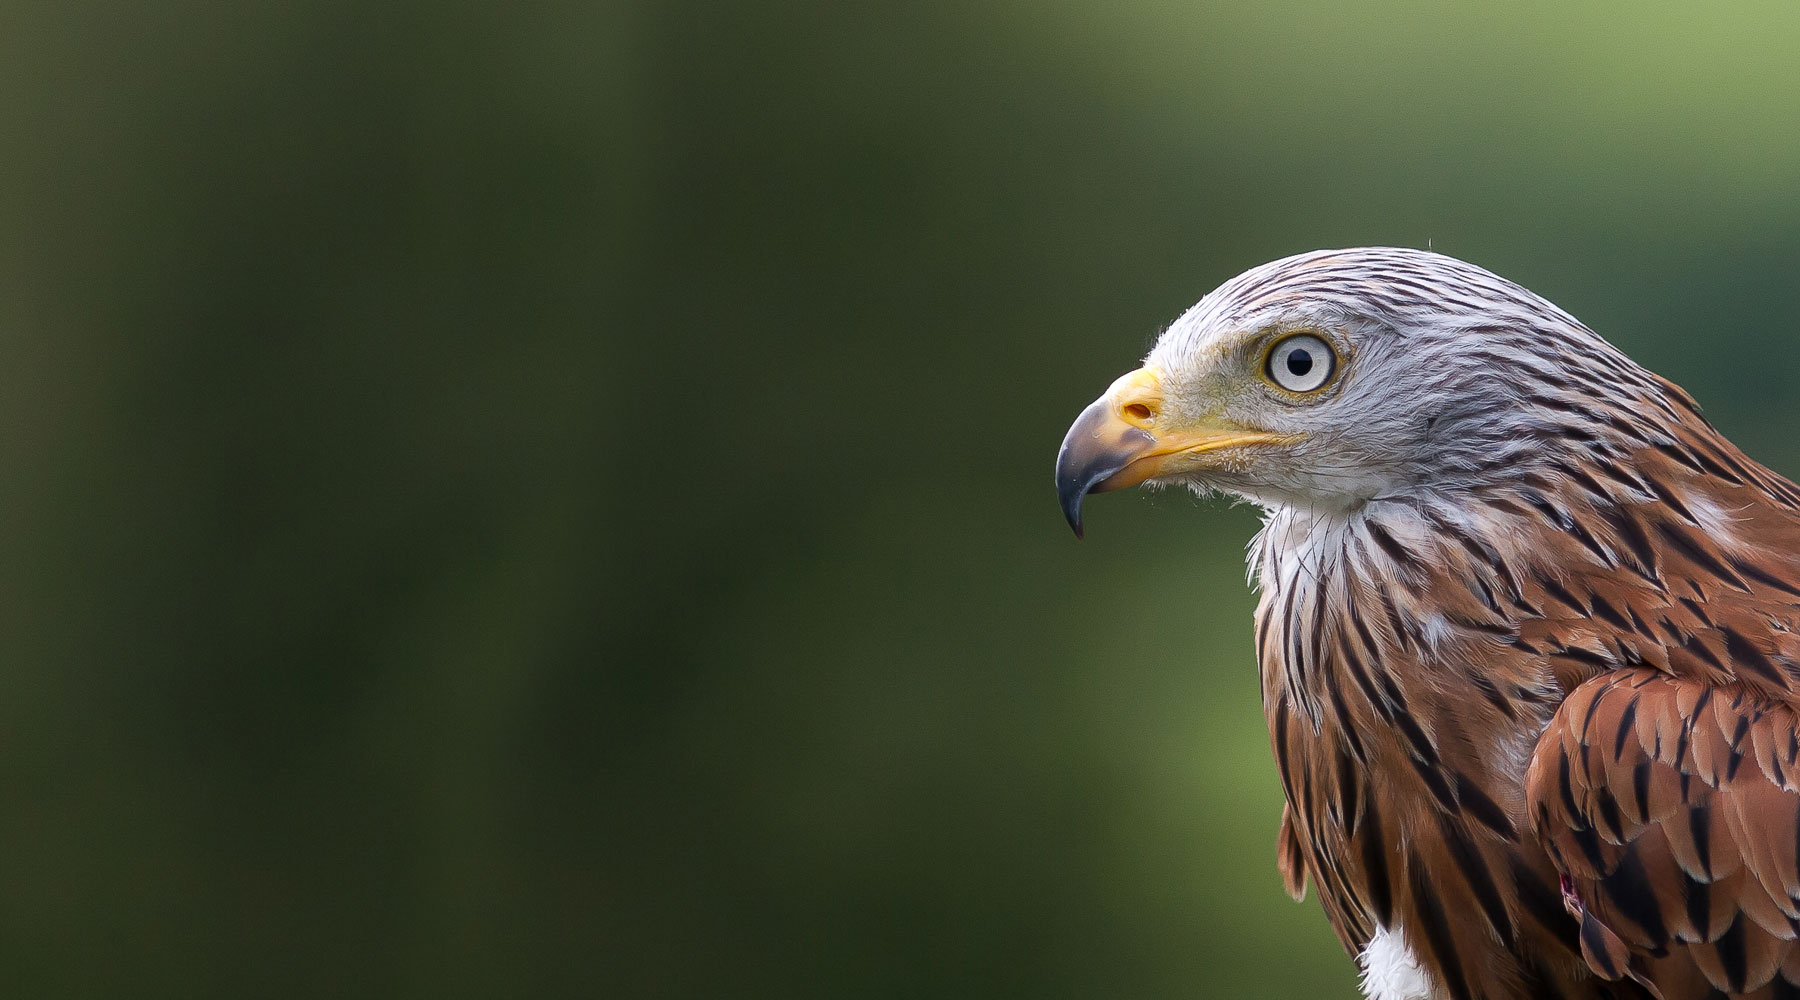 Mike Snelle | Red kite